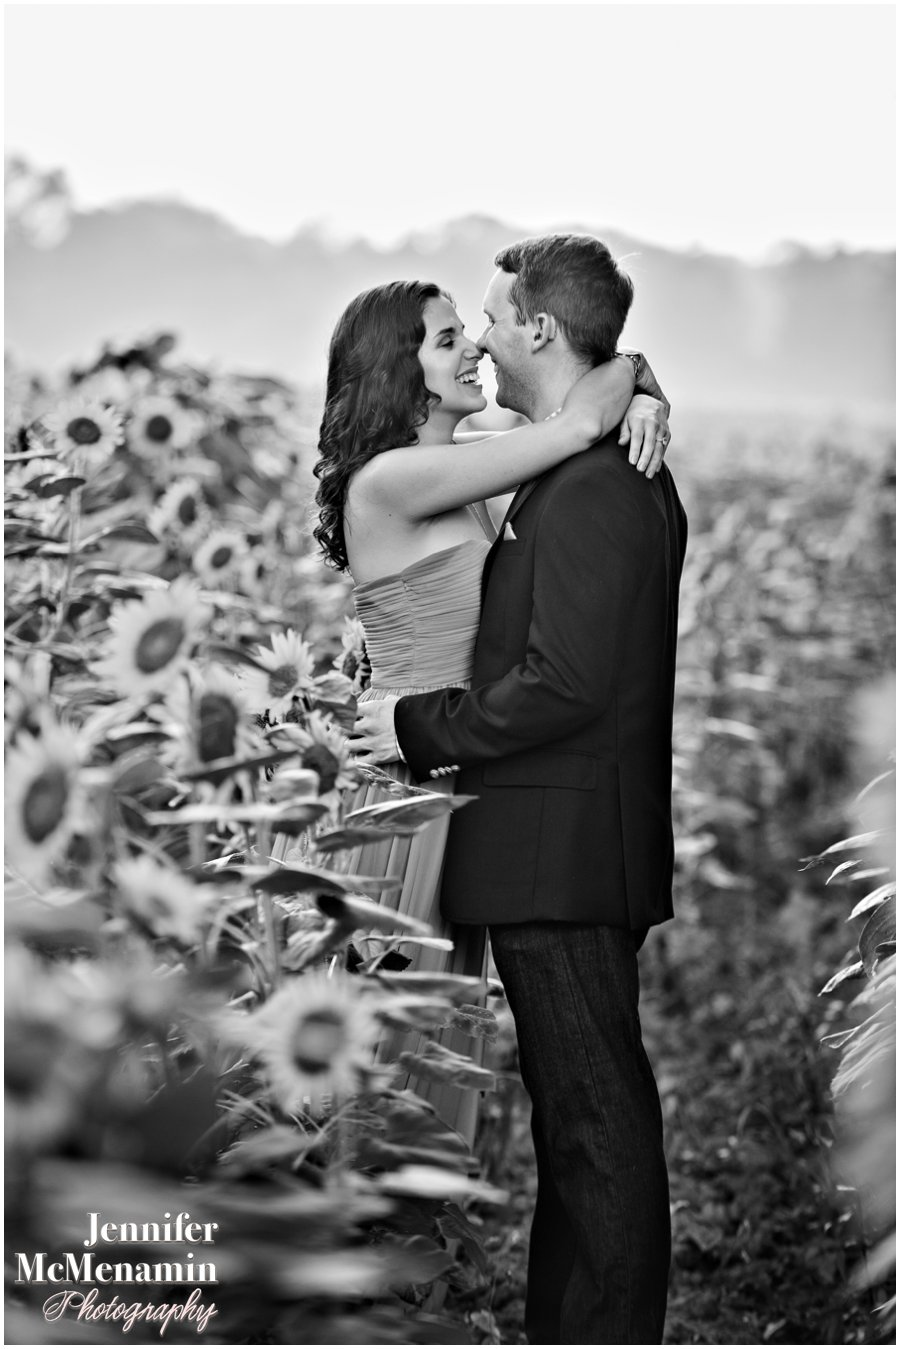 15-BlumWilliams_0374bw-0094_JenniferMcMenaminPhotography_sunflowers_engagement-photos_DC_Baltimore